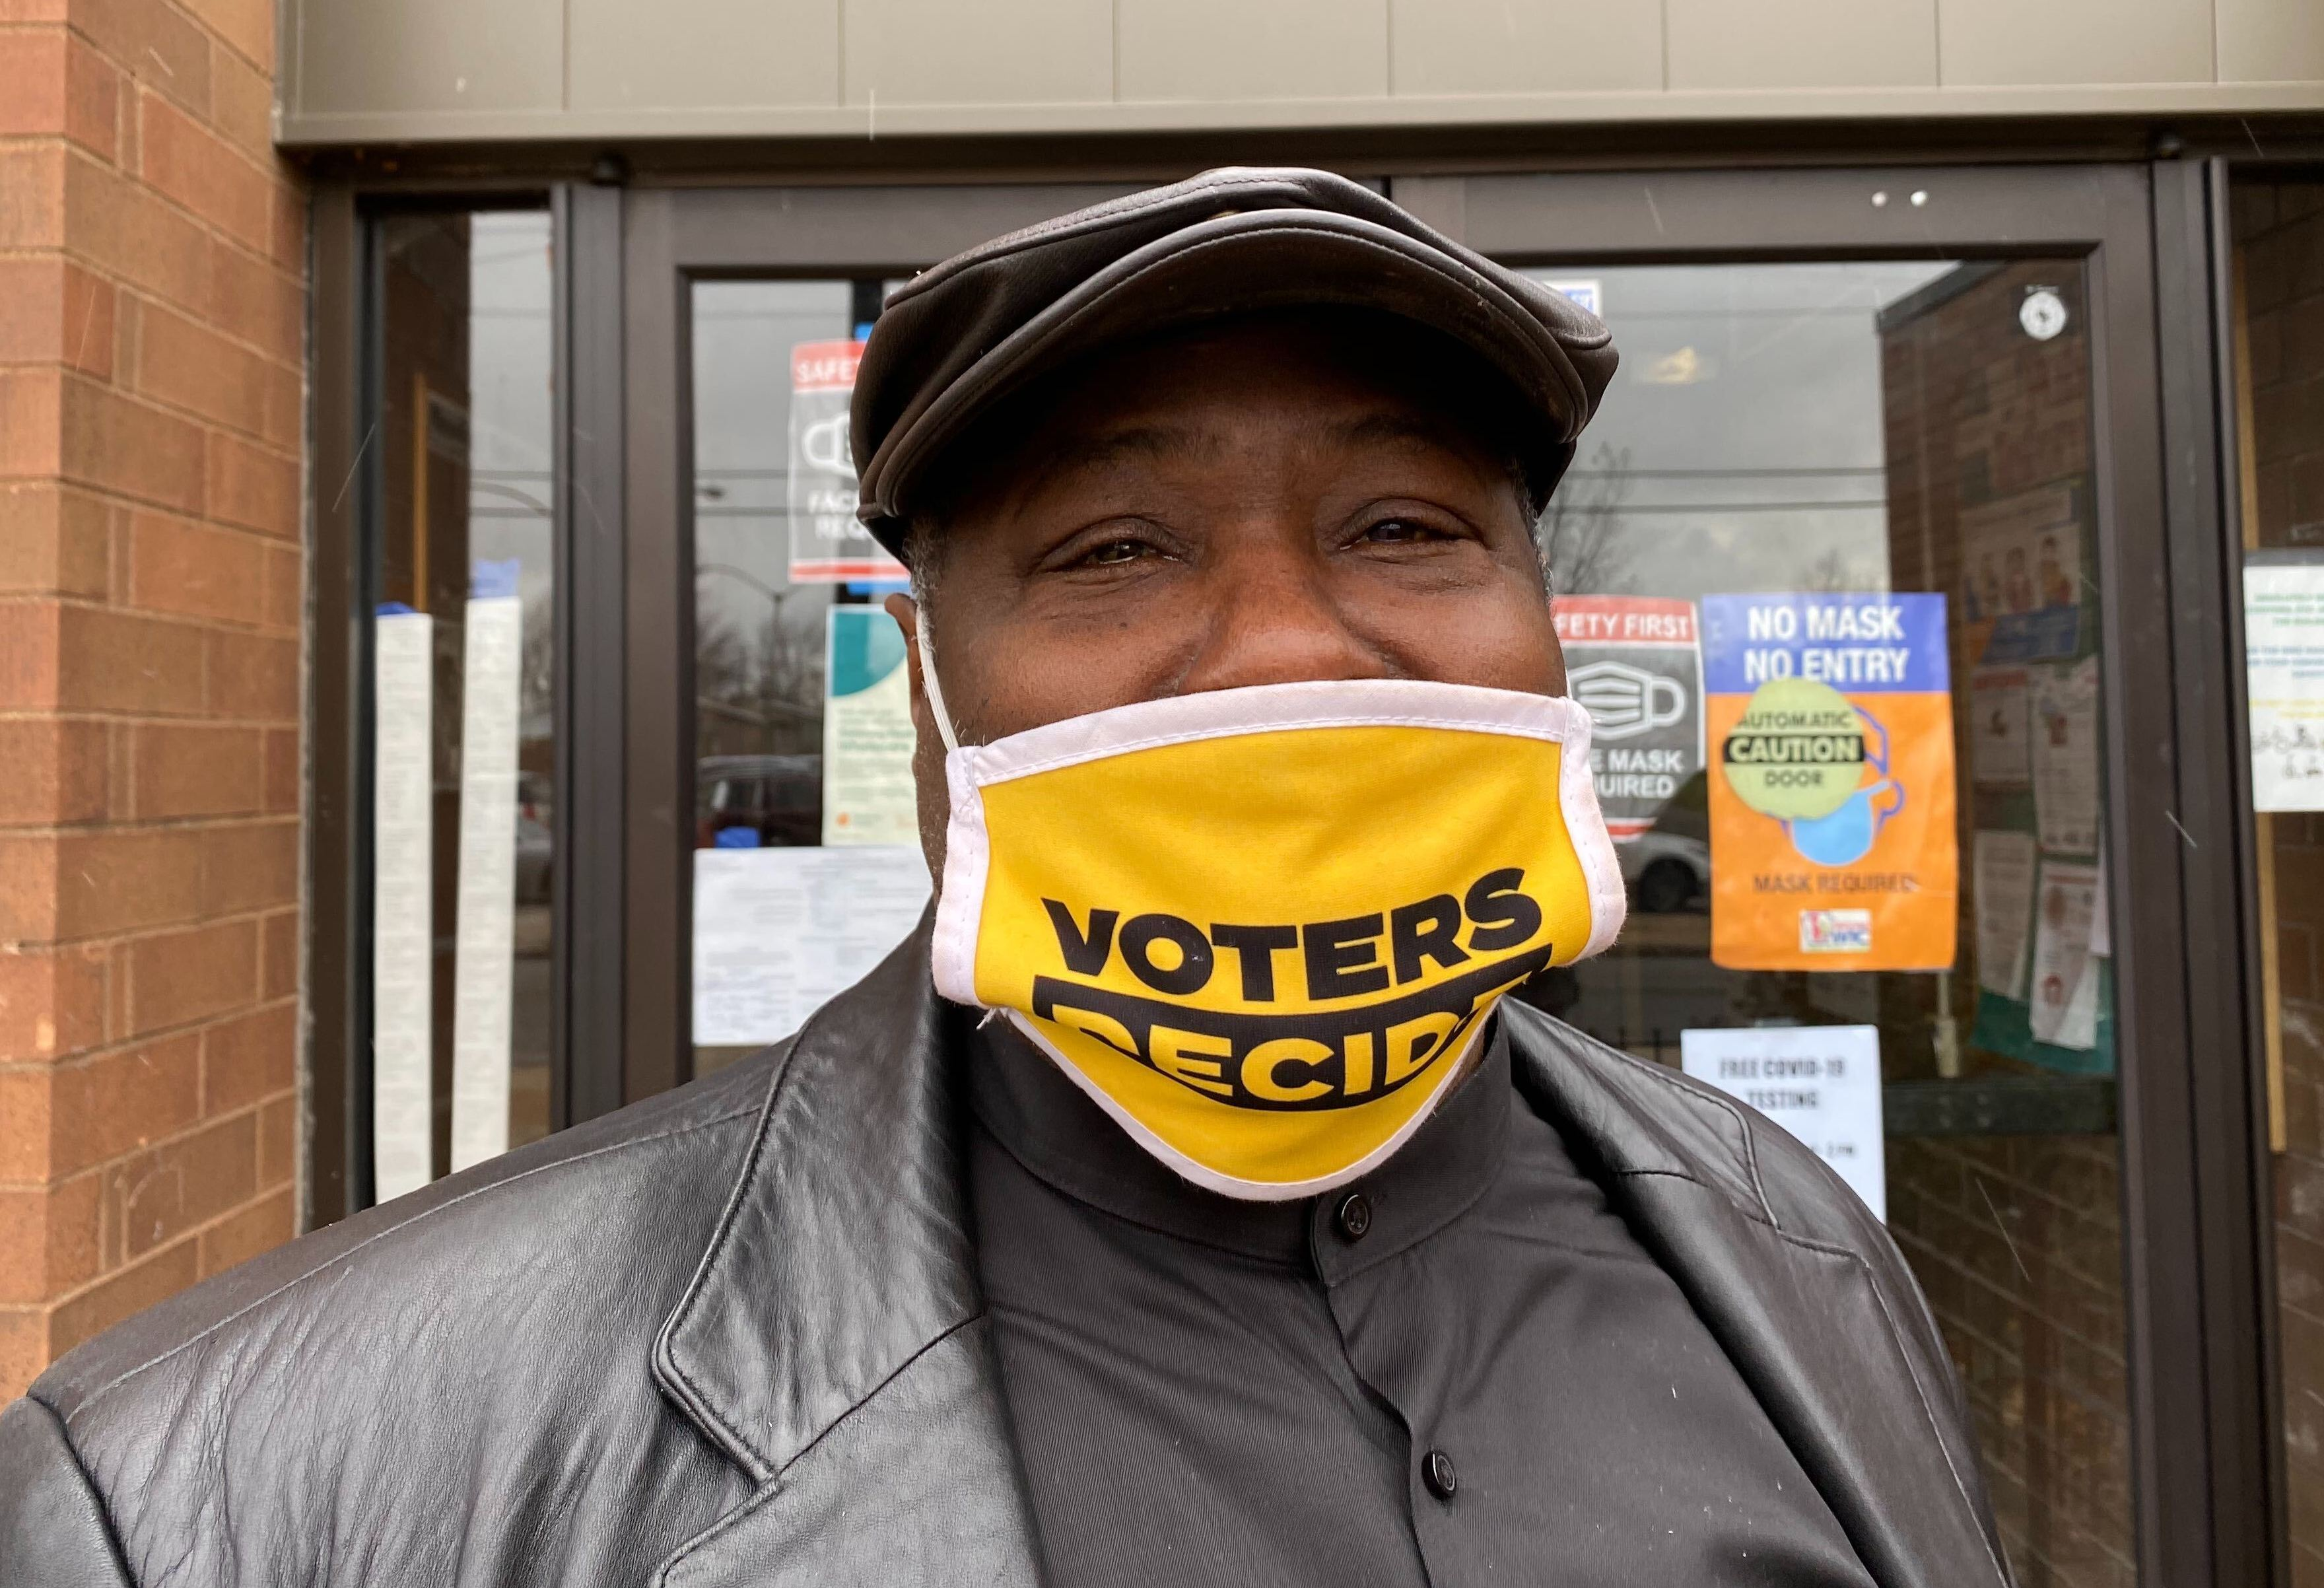 """Michael Keys wears a mask that says """"VOTERS DECIDE"""""""